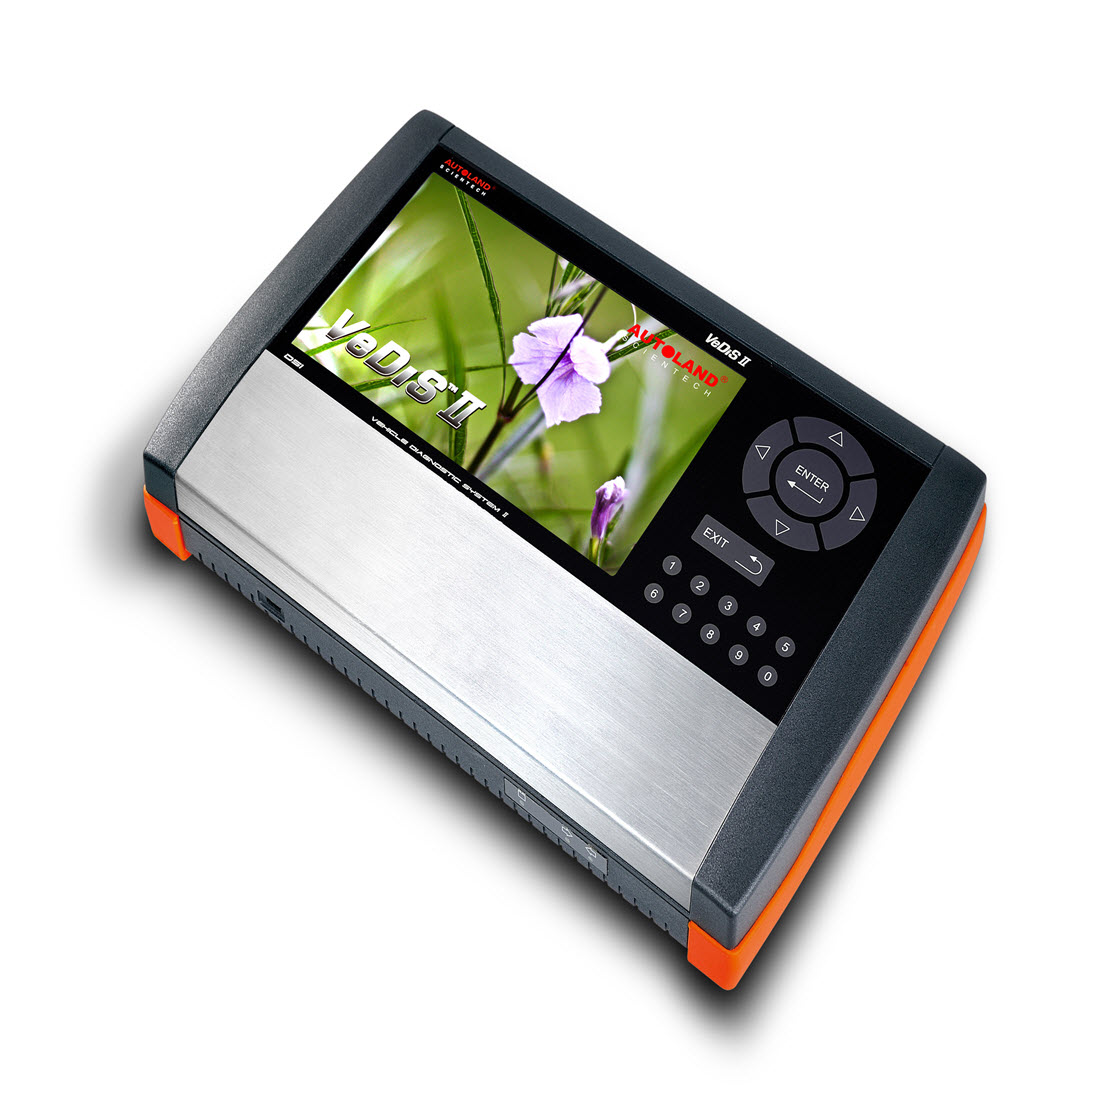 vedis II diagnostic tool